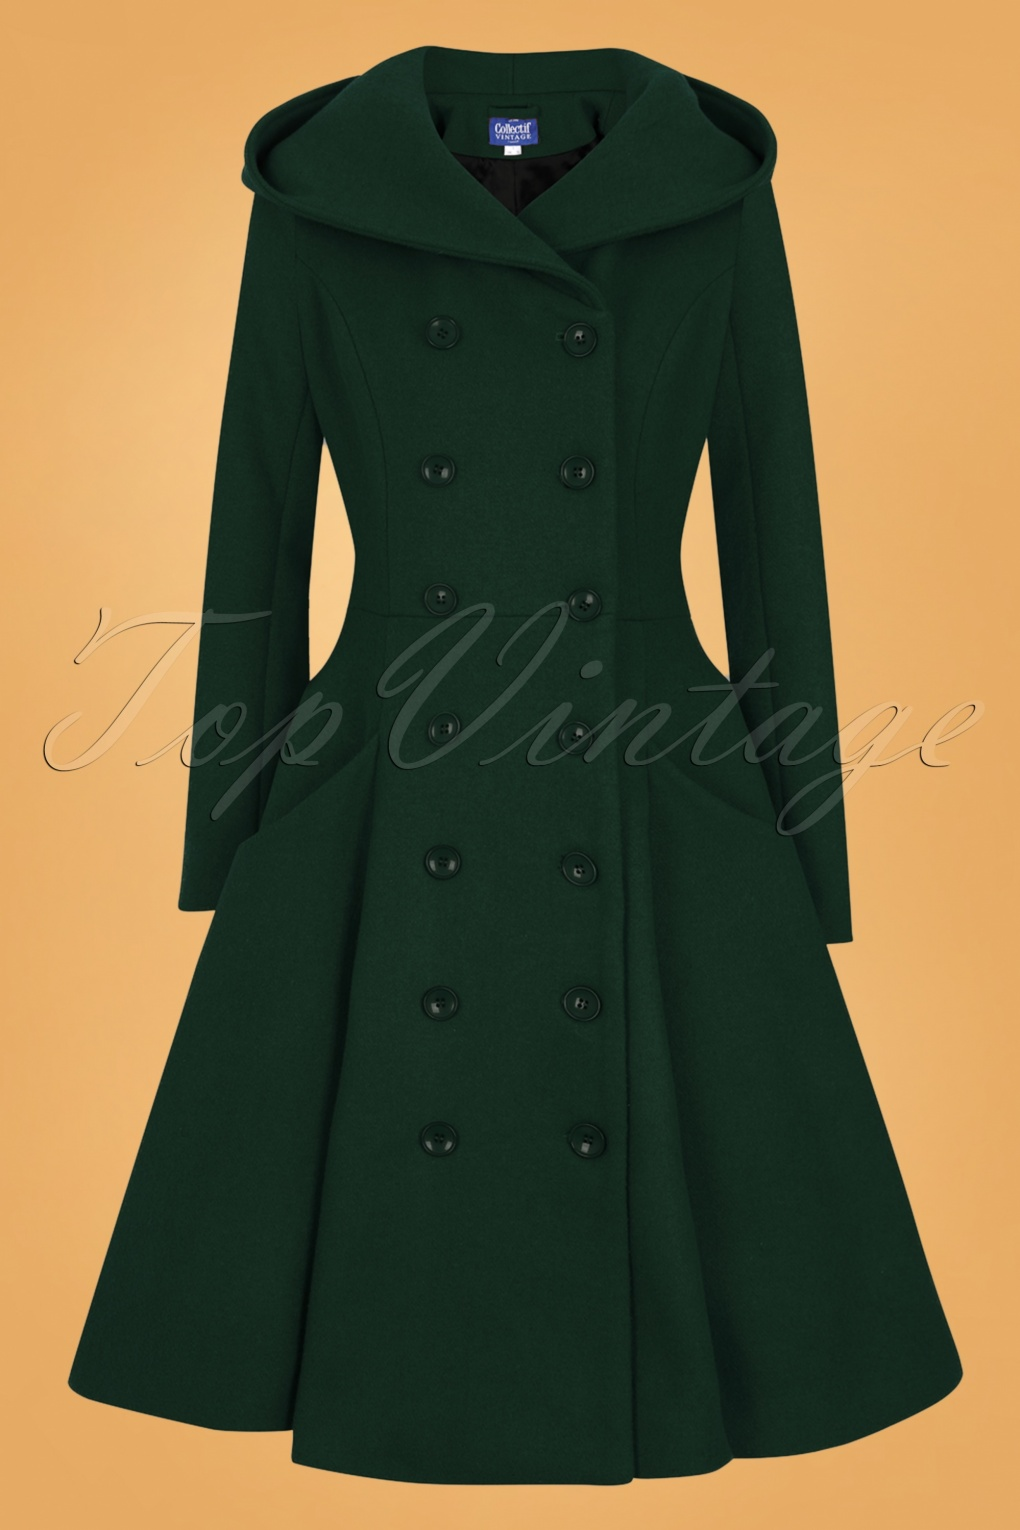 Vintage Coats & Jackets | Retro Coats and Jackets 50s Heather Hooded Swing Coat in Forest Green £154.47 AT vintagedancer.com